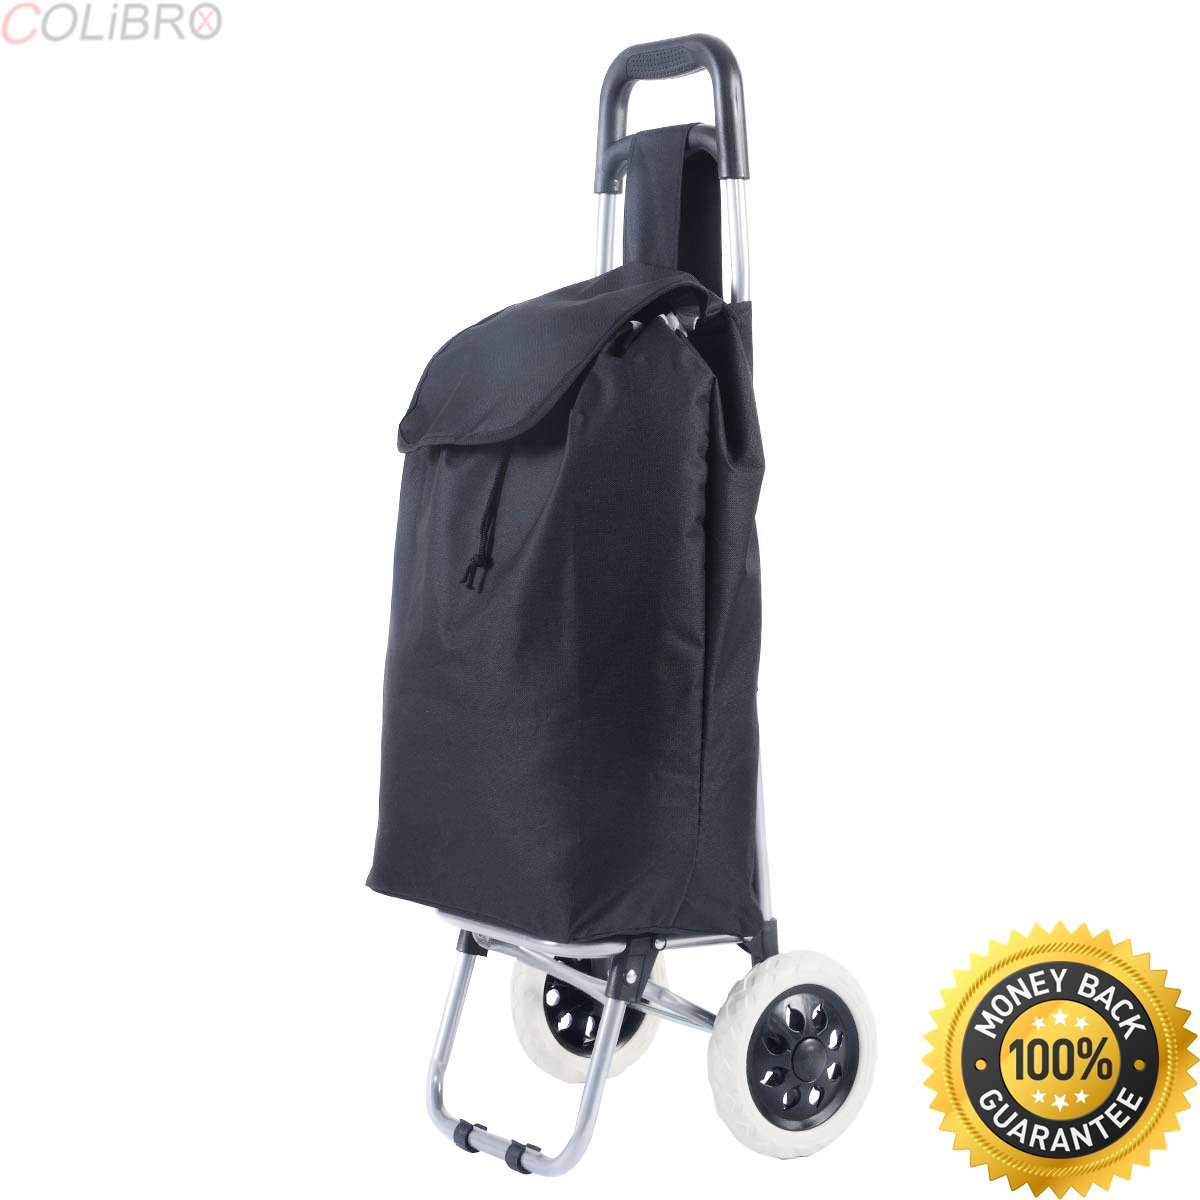 COLIBROX--Black Large Capacity Light Weight Wheeled Shopping Trolley Push Cart Bag New. best golf bag for push cart 2017. ogio cirrus stand bag. bag boy push cart.clicgear parts. golf clubs for sale. by COLIBROX